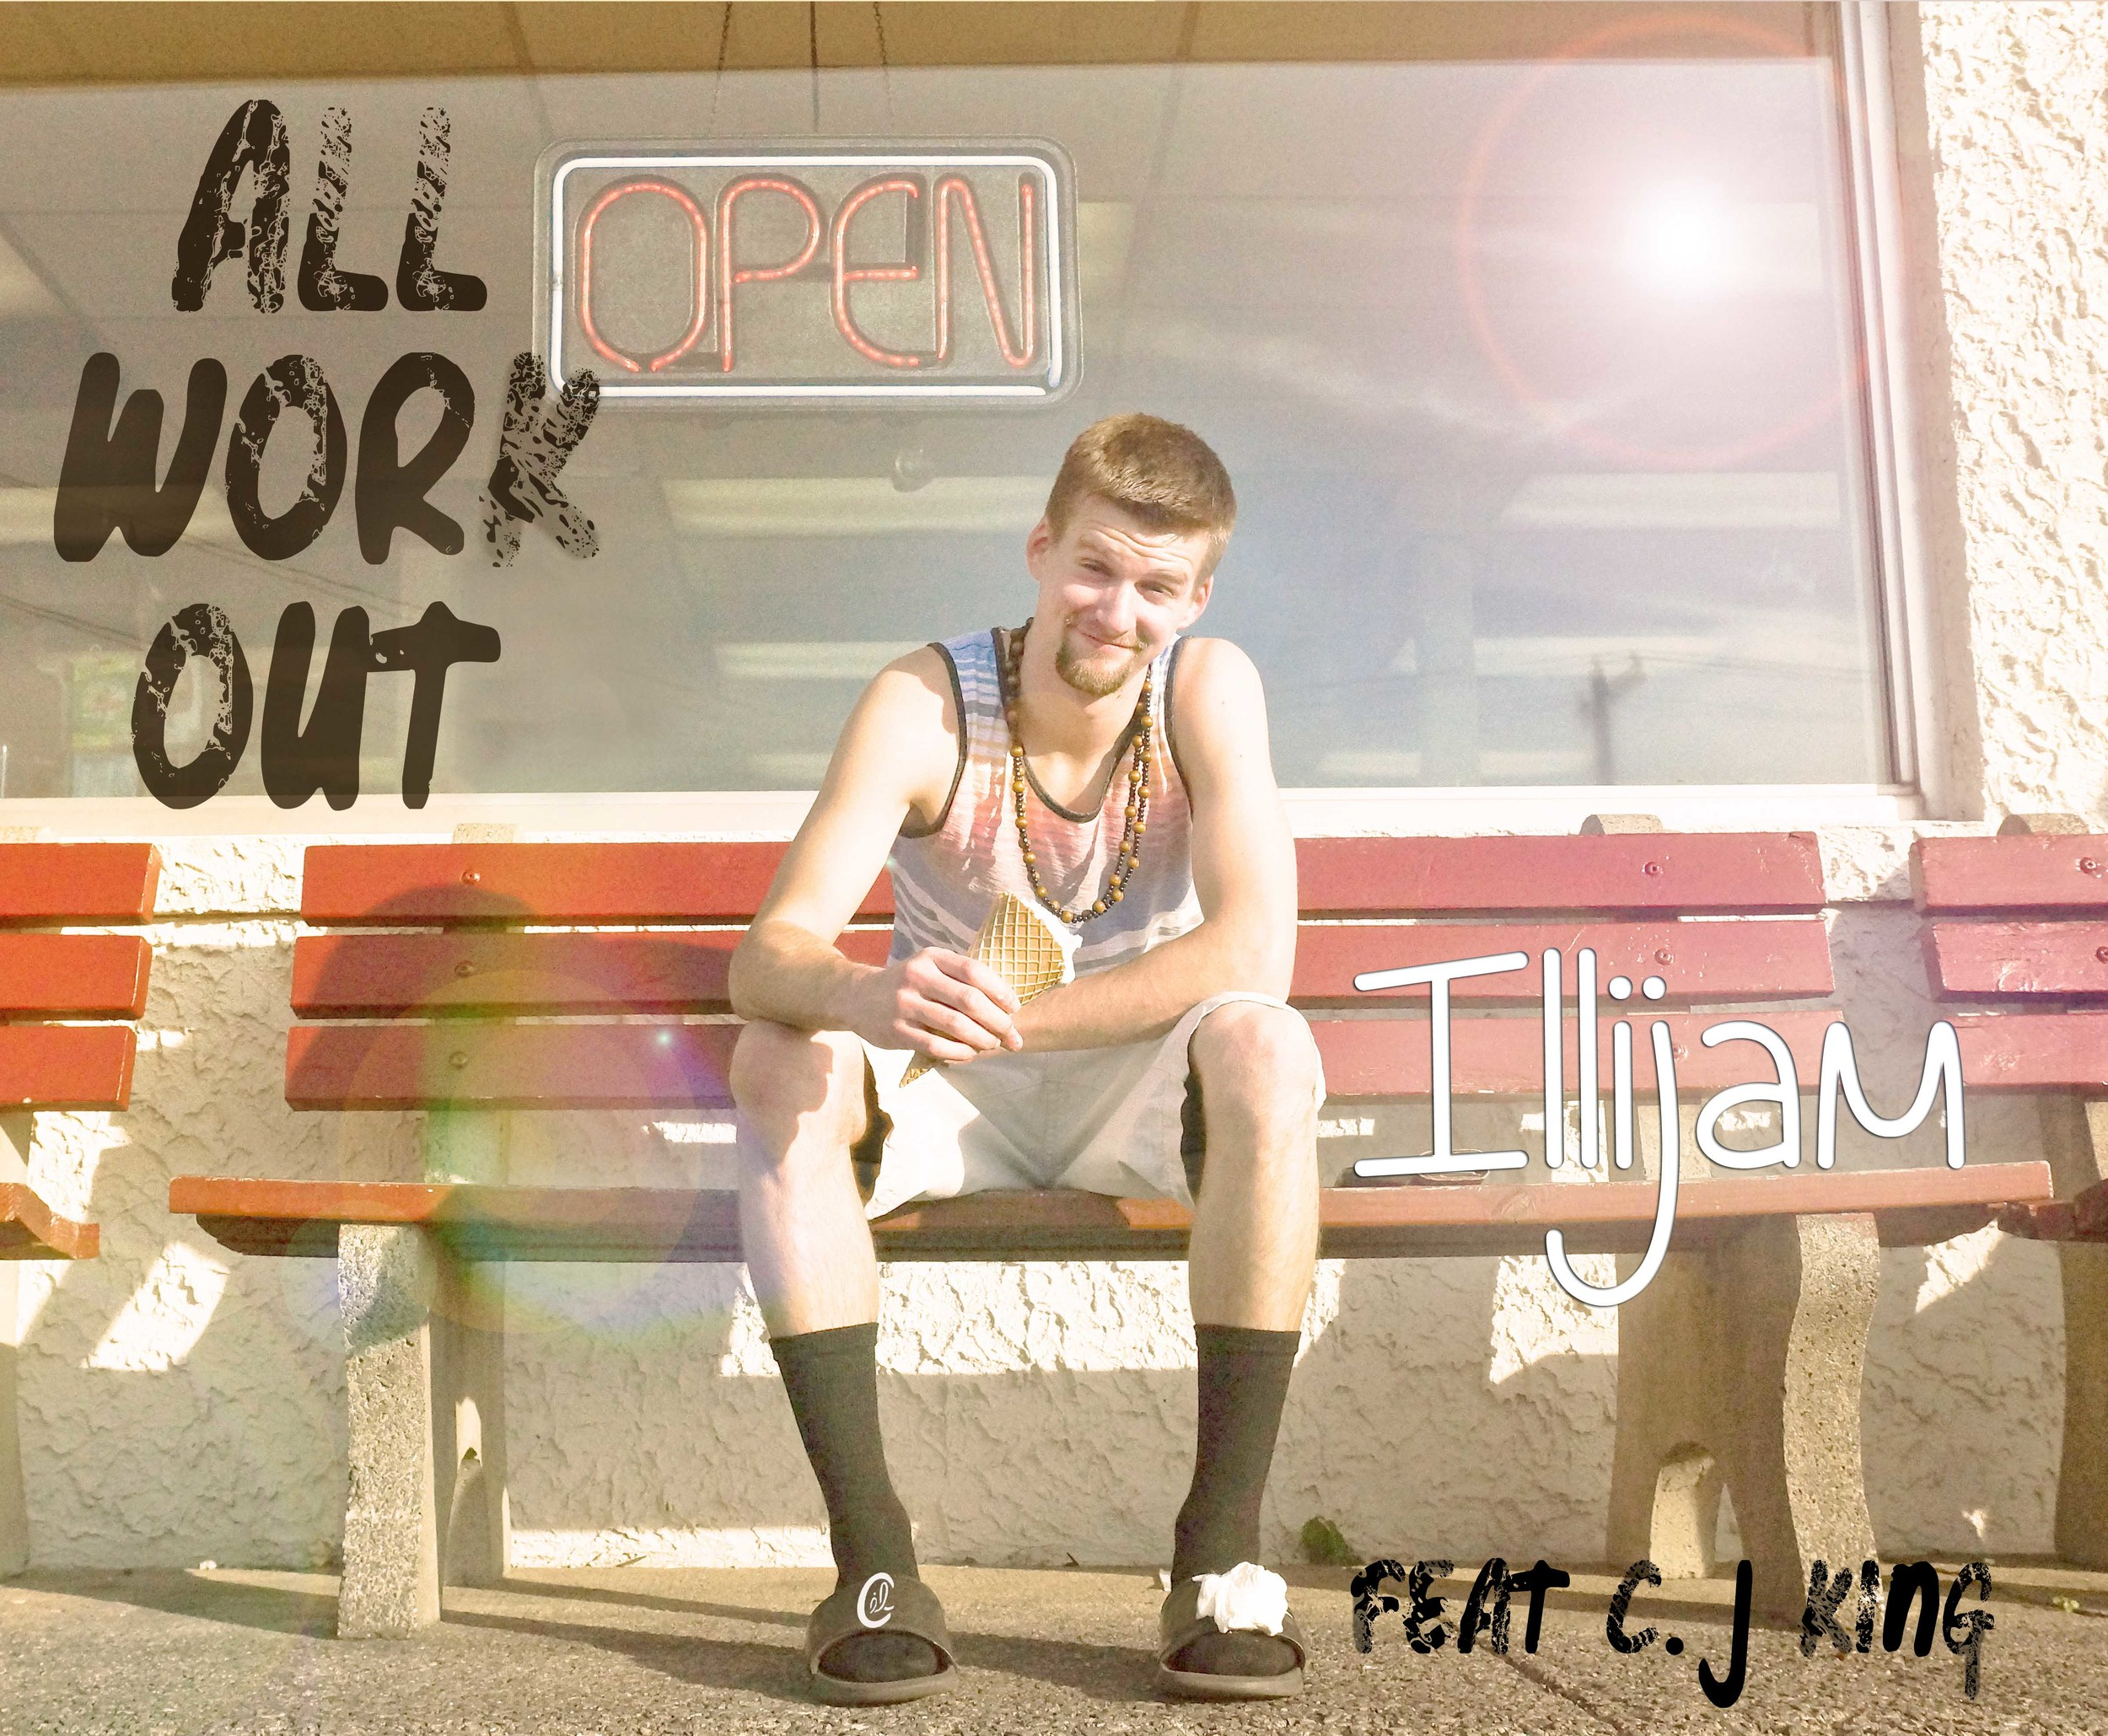 All Work Out Cover Art - 1 MB.jpg